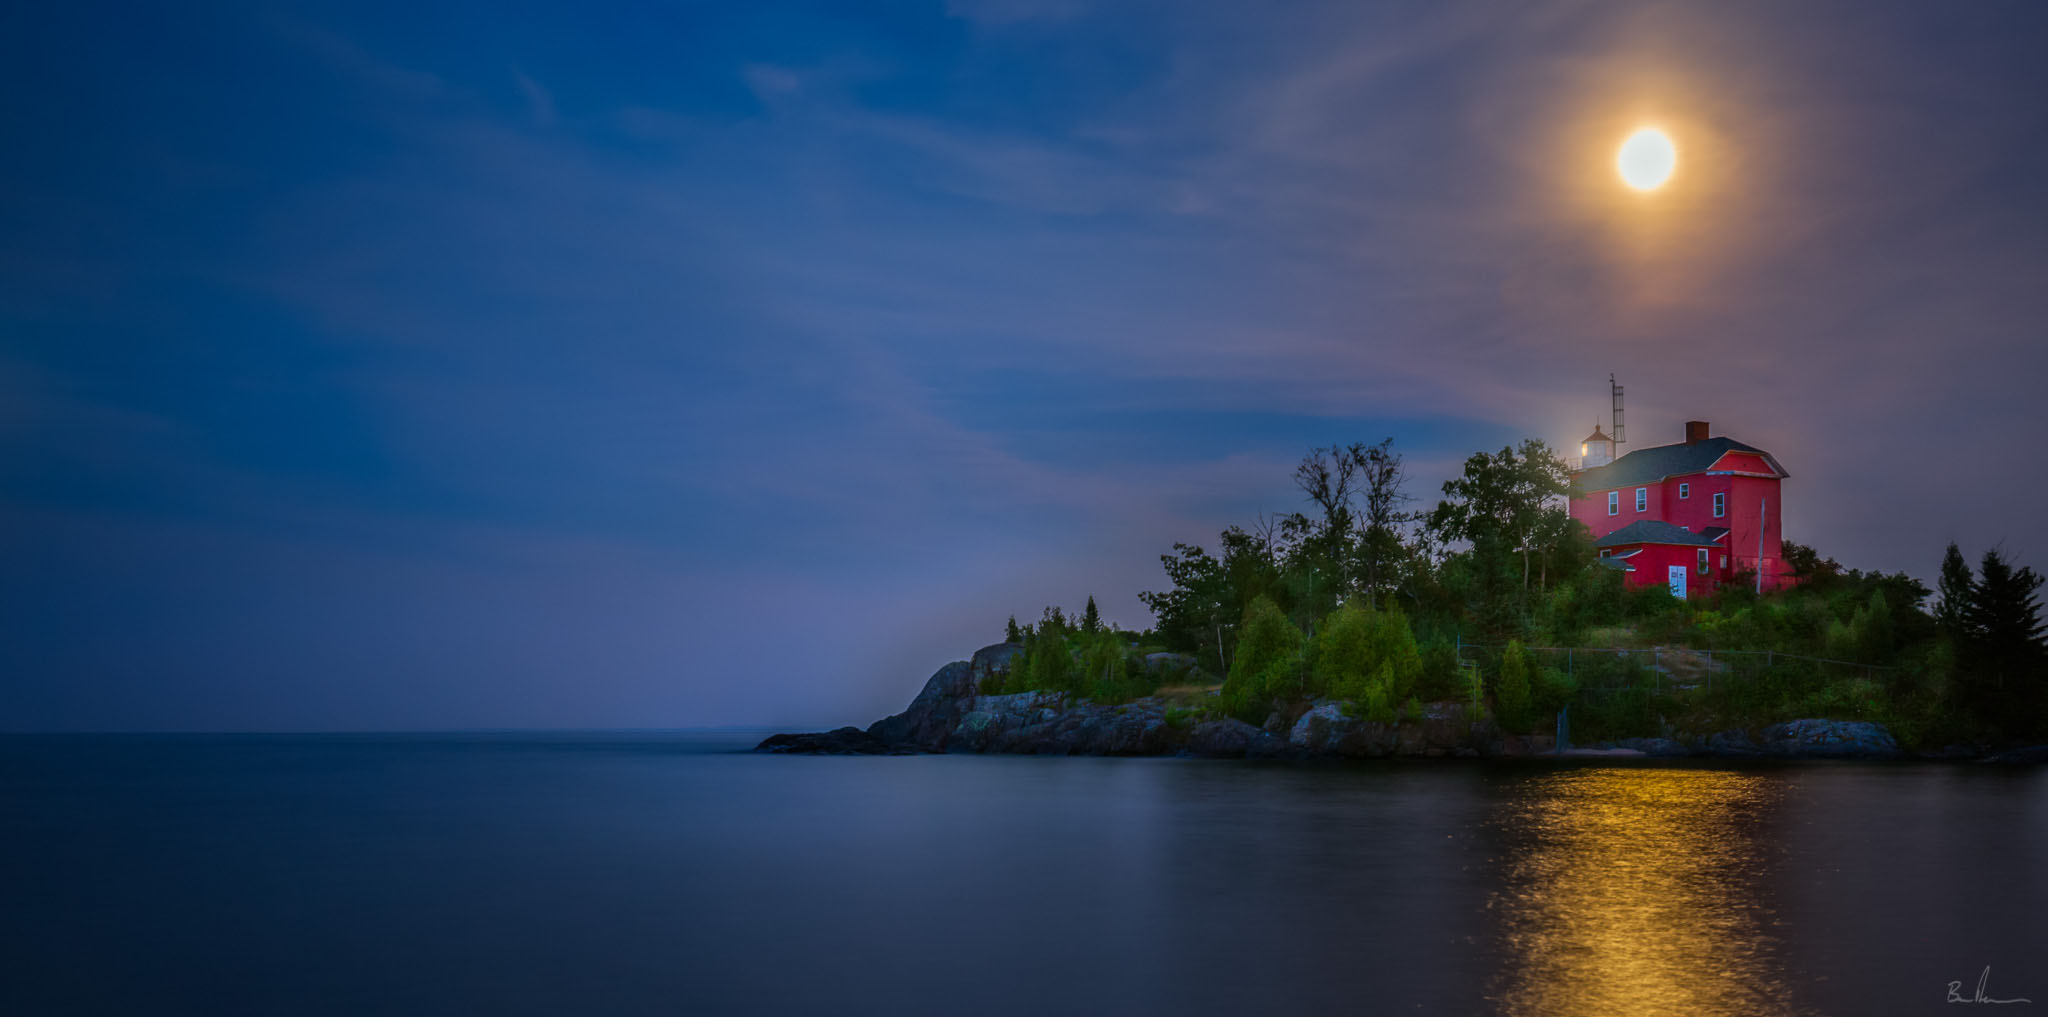 Here is an image from the Marquette Harbor Lighthouse. Developing my style takes time and is ever changing.